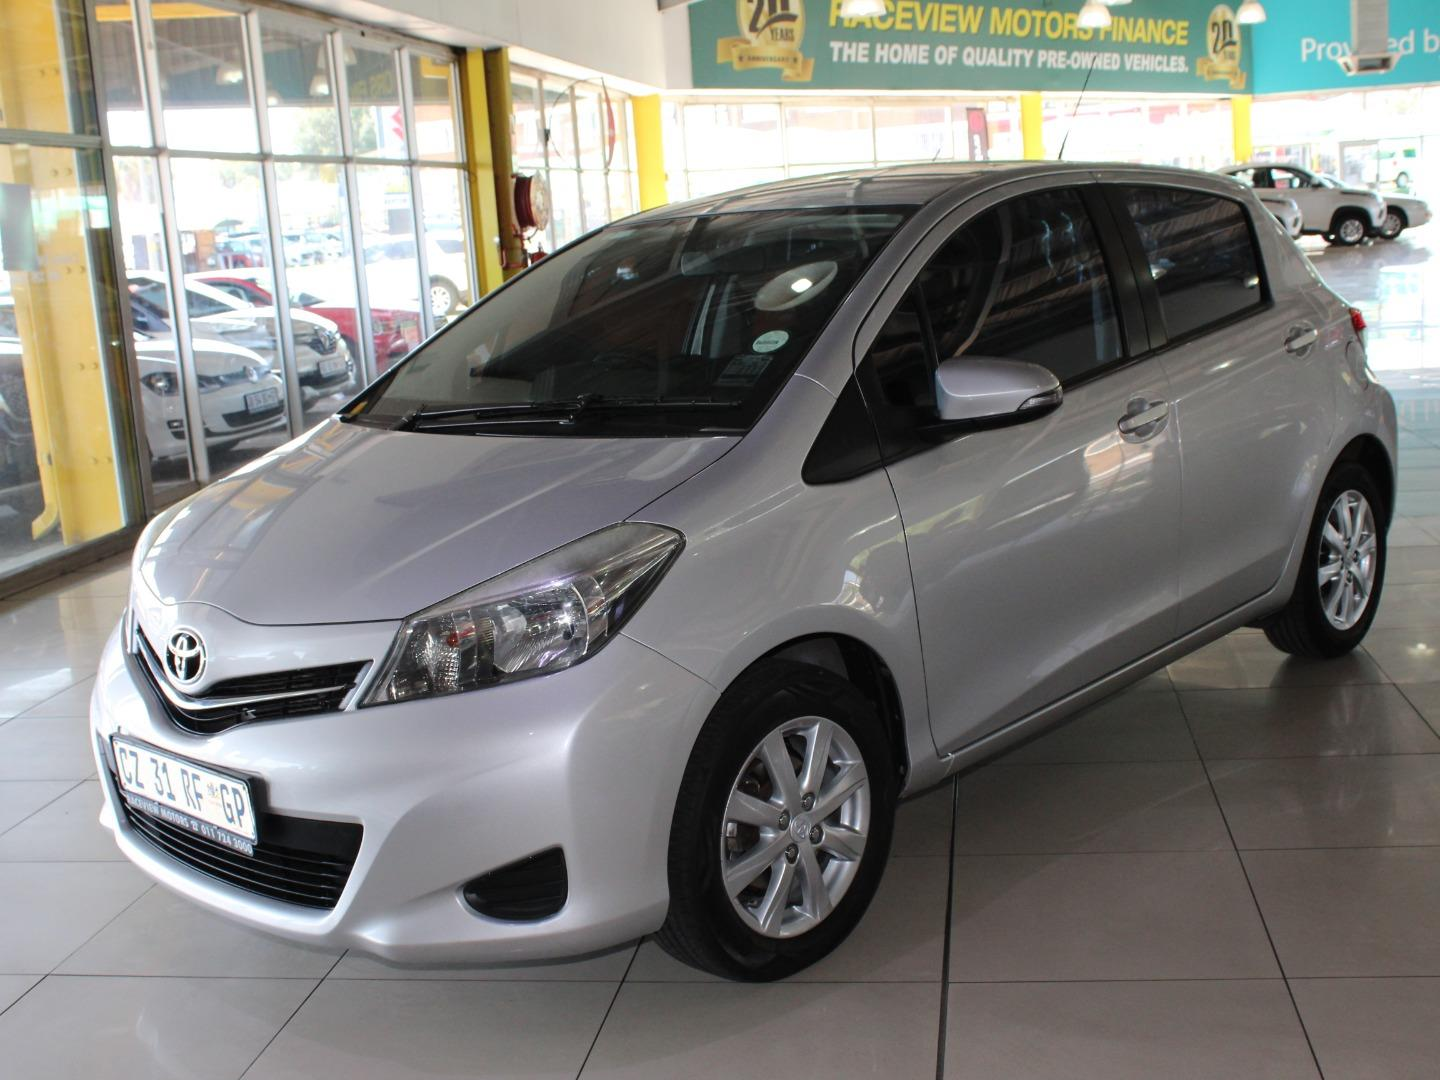 2014 Toyota Yaris 5-Door 1.0 XS- Picture 2